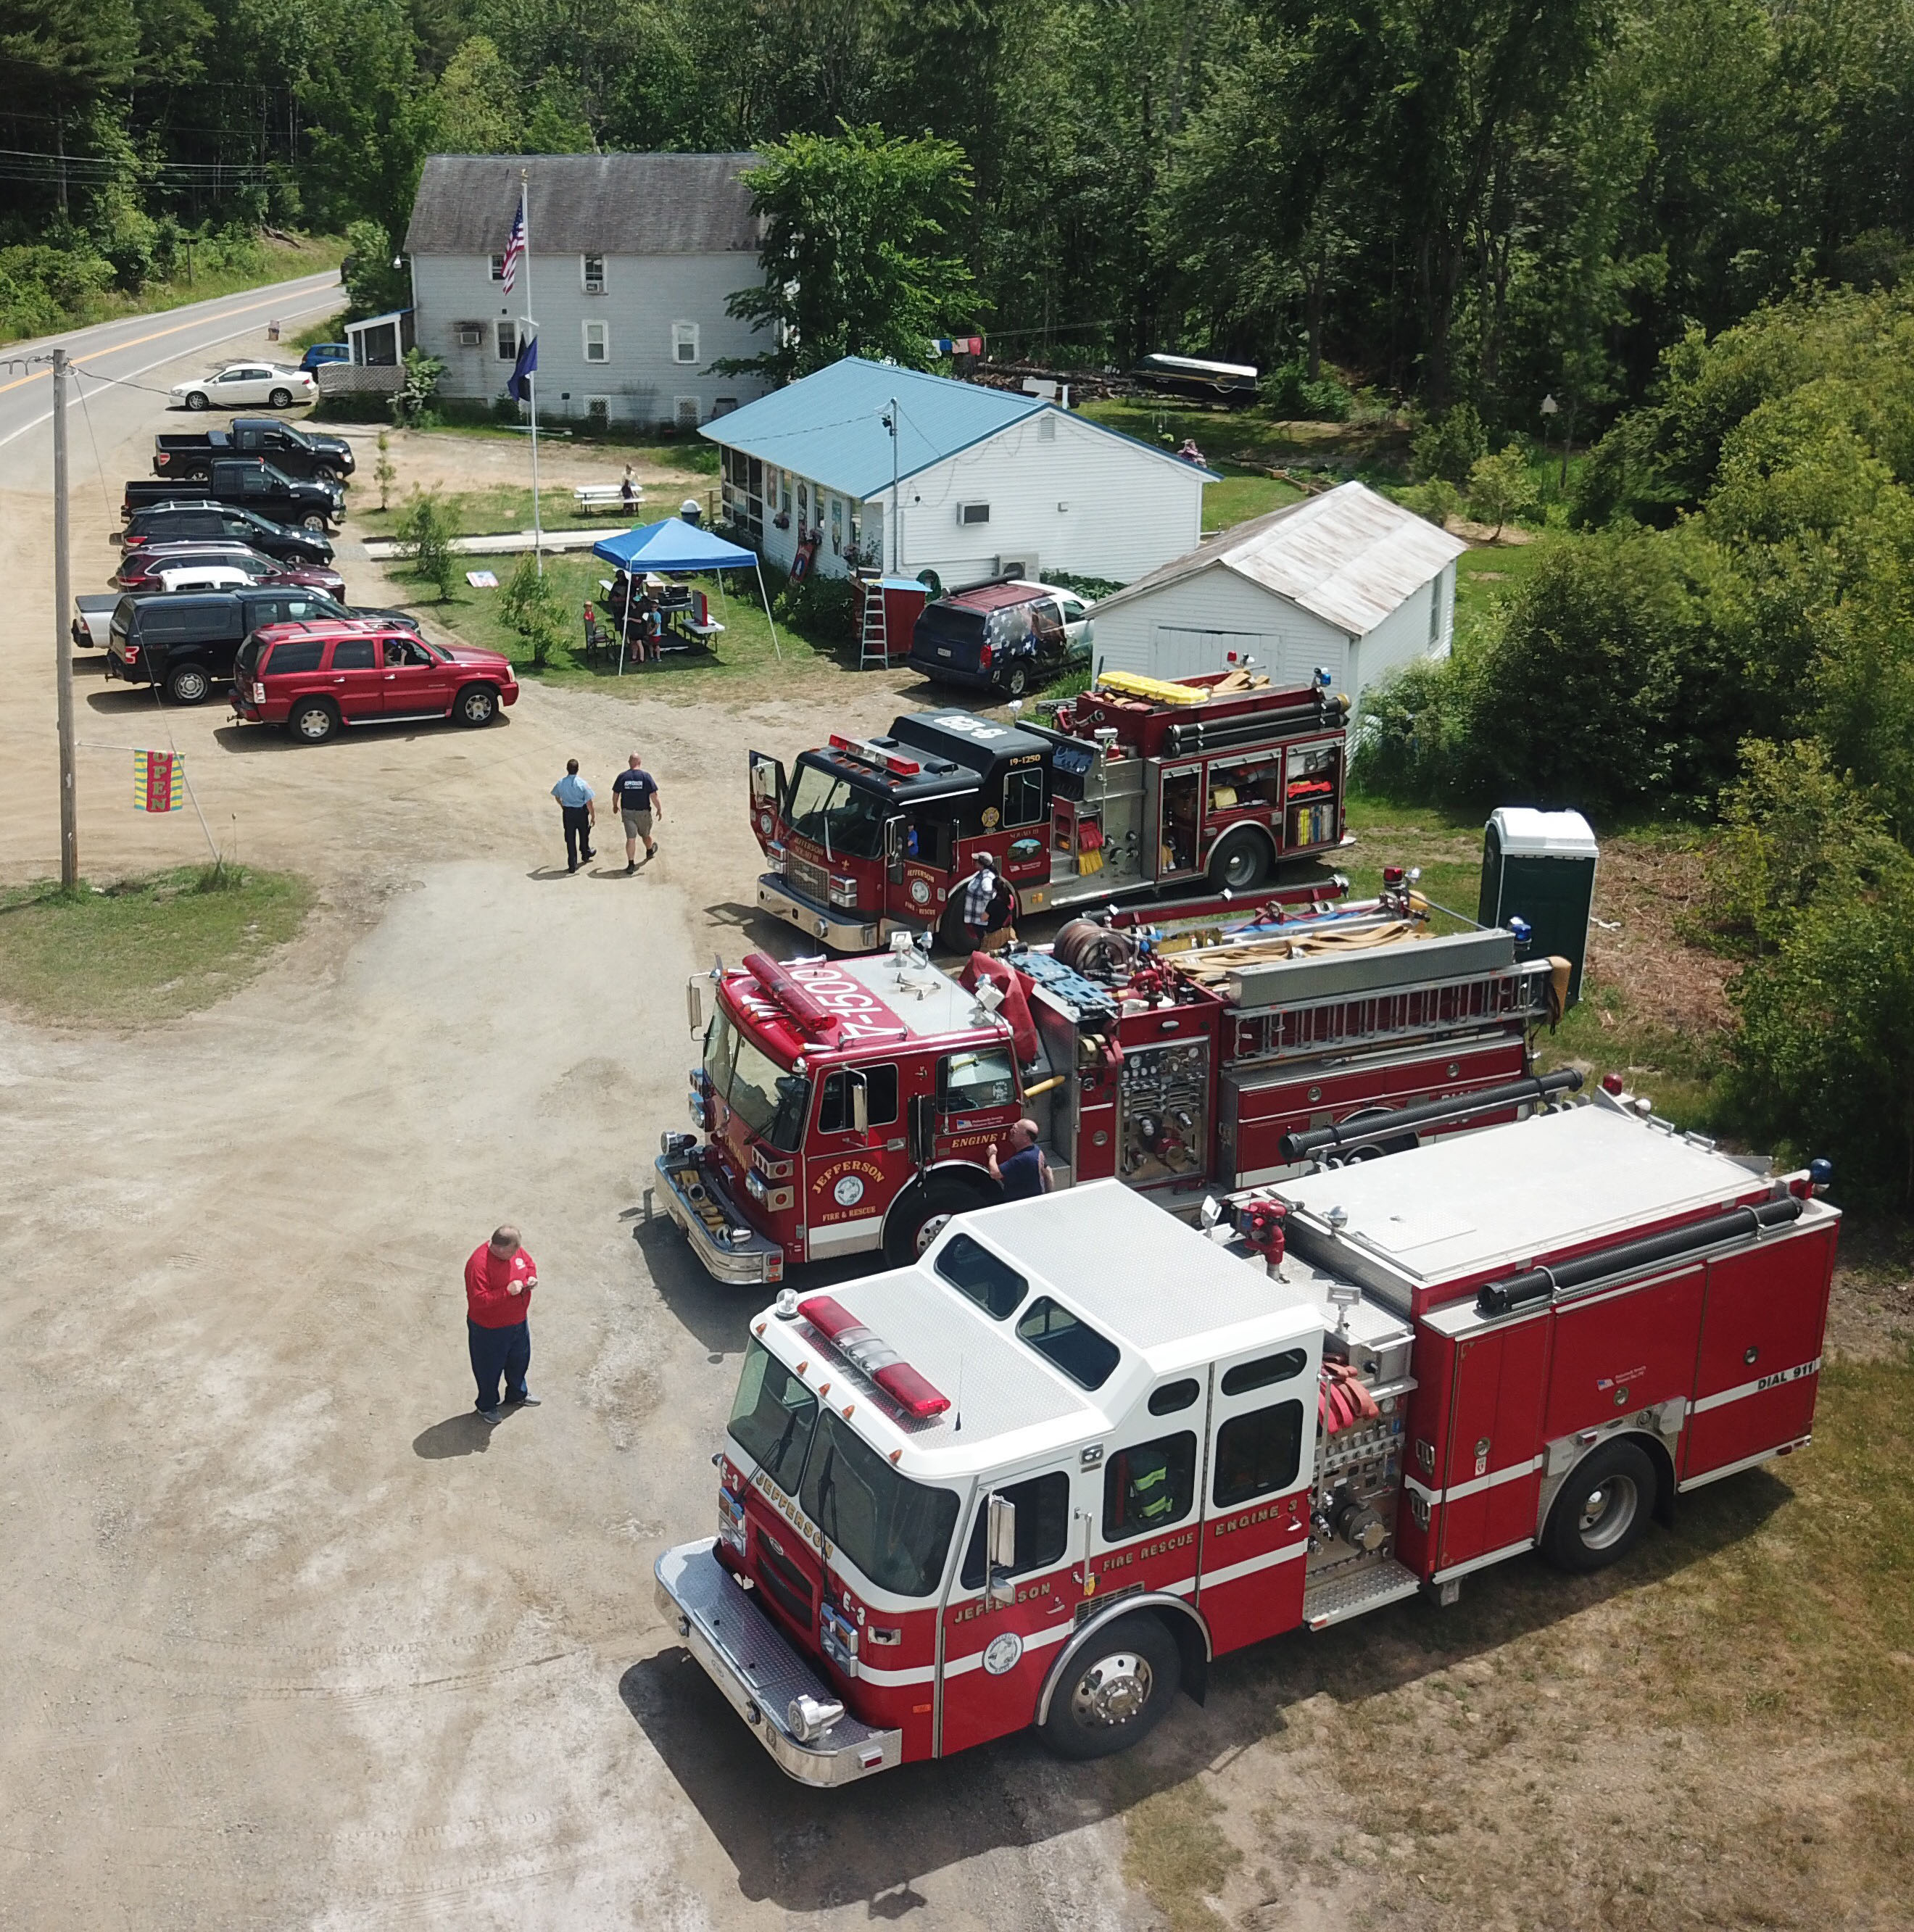 A drone's-eye view of the Jefferson Scoop during the Jefferson Fire and Rescue fundraiser Saturday. (Photo courtesy Joe Holland)